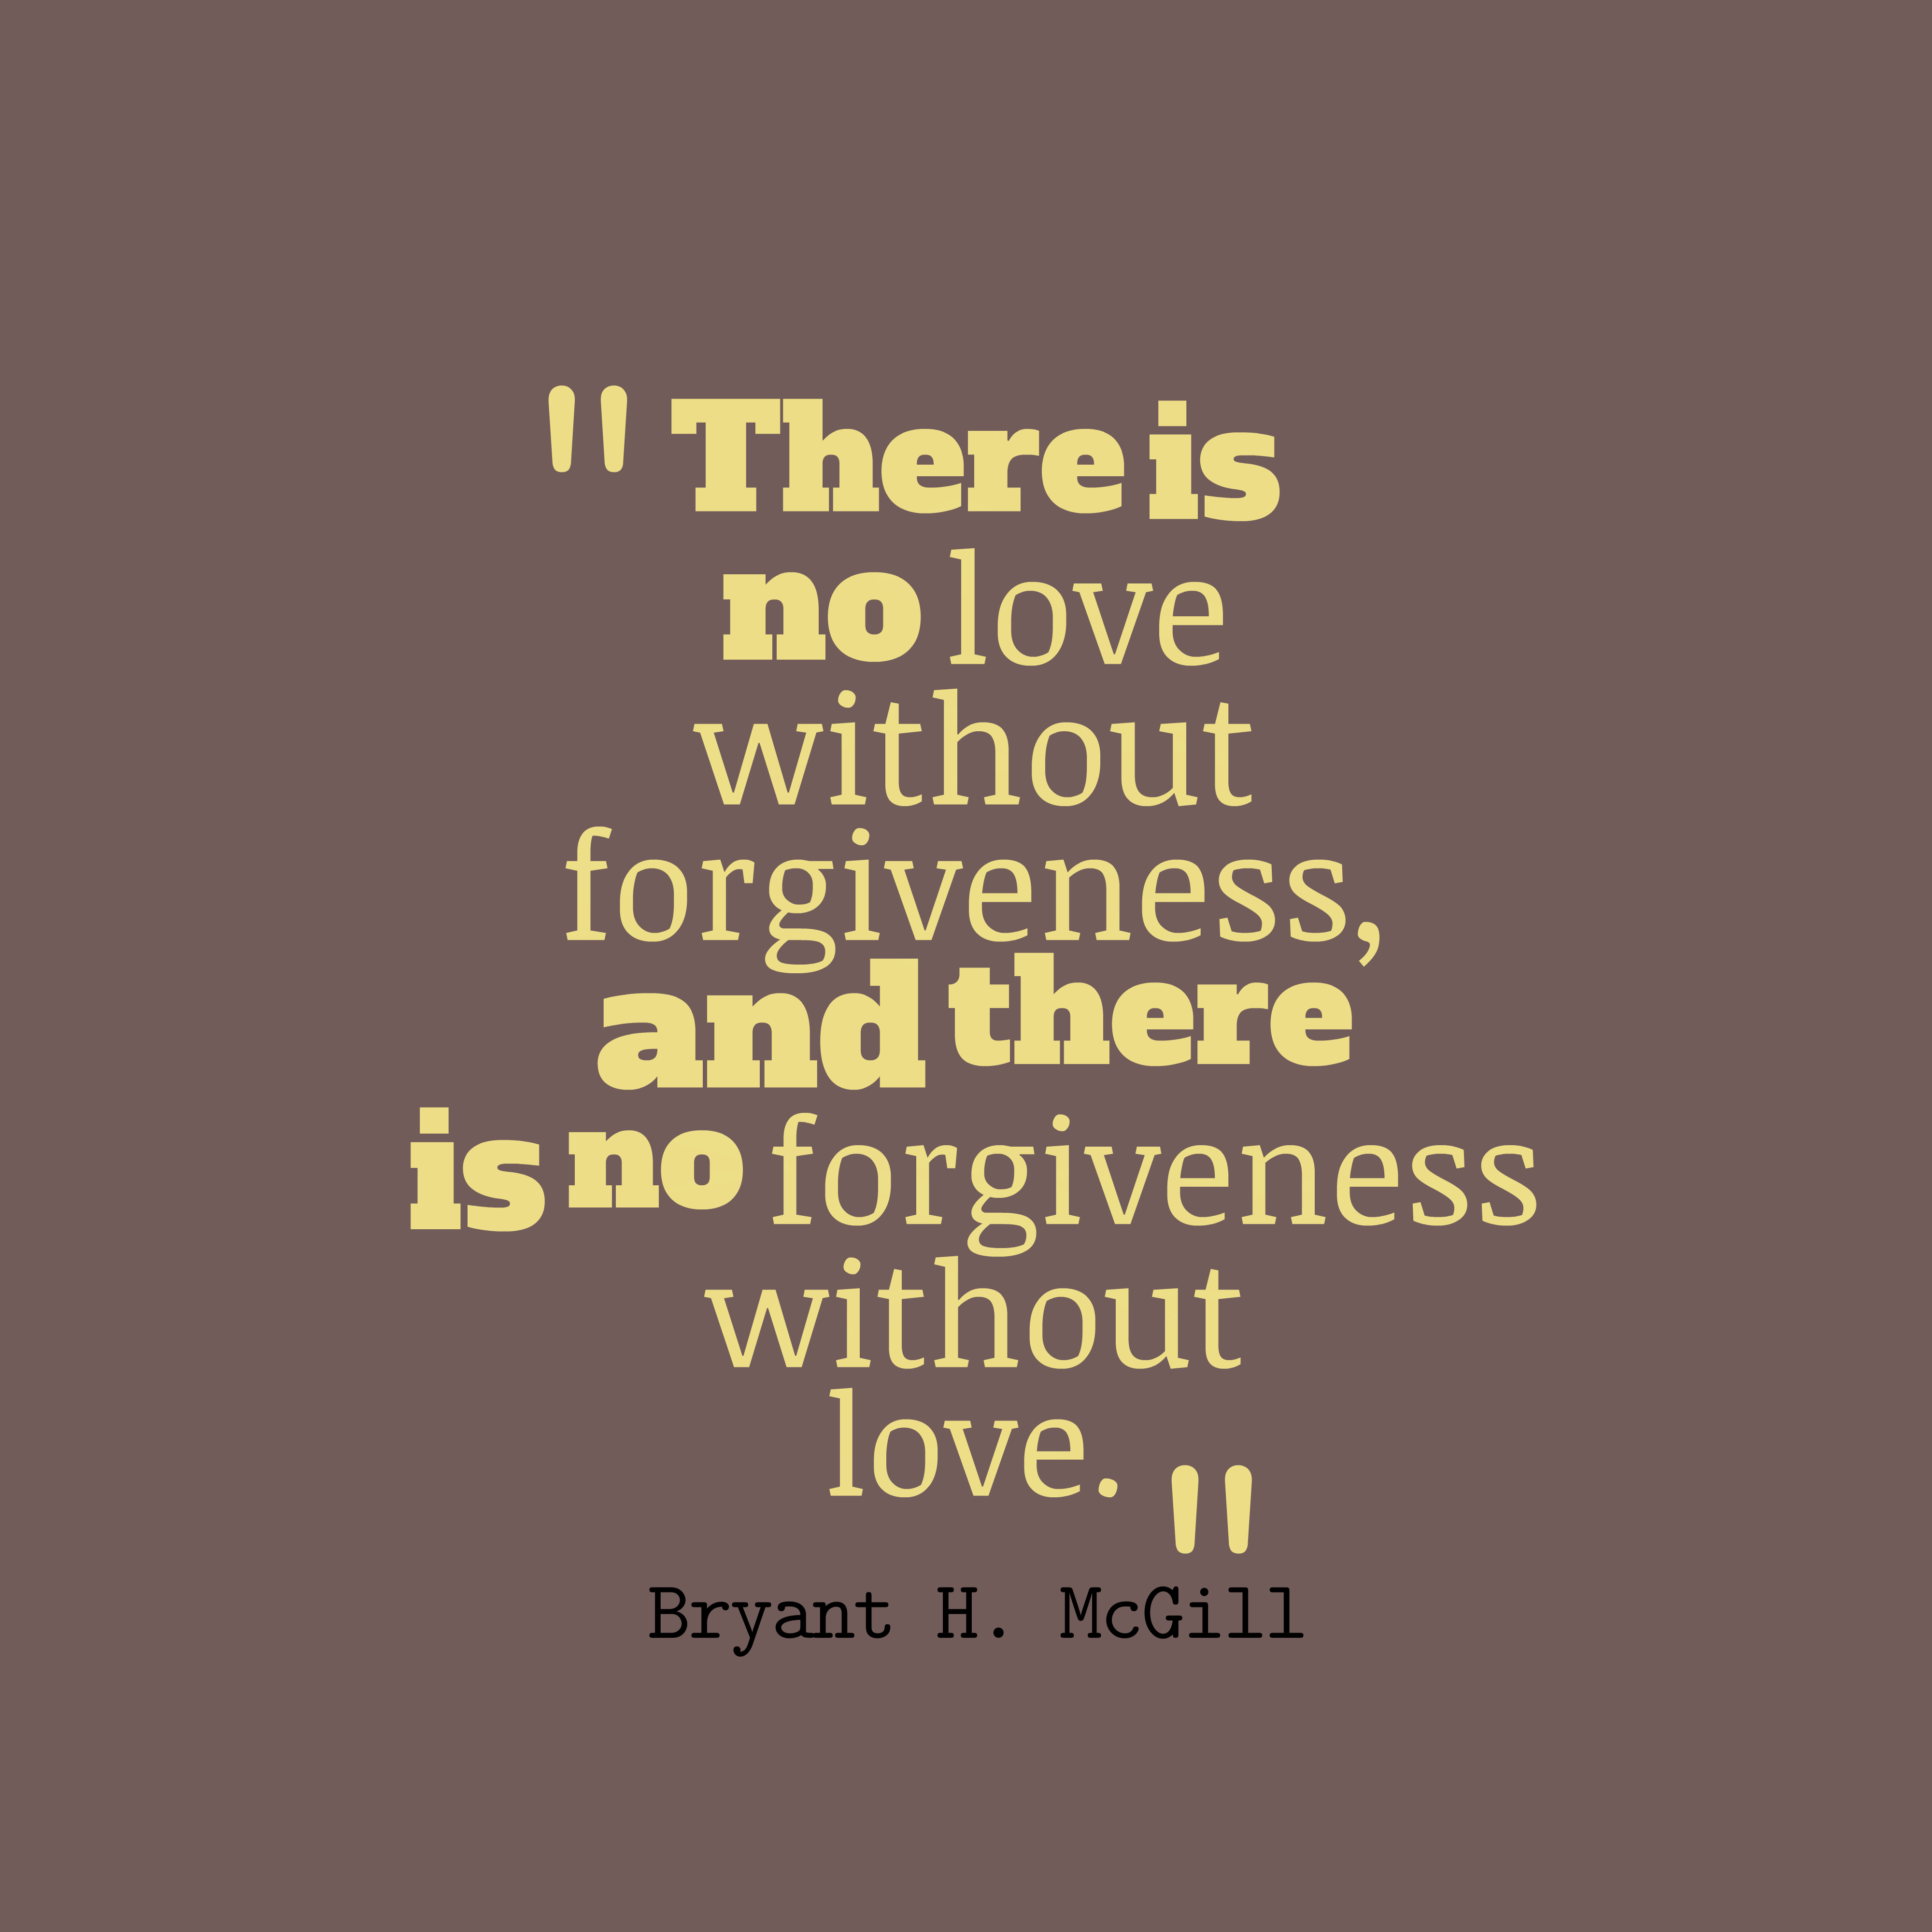 No Love Quotes: There-Is-No-Love-Without-Forgiveness-Quotes-About